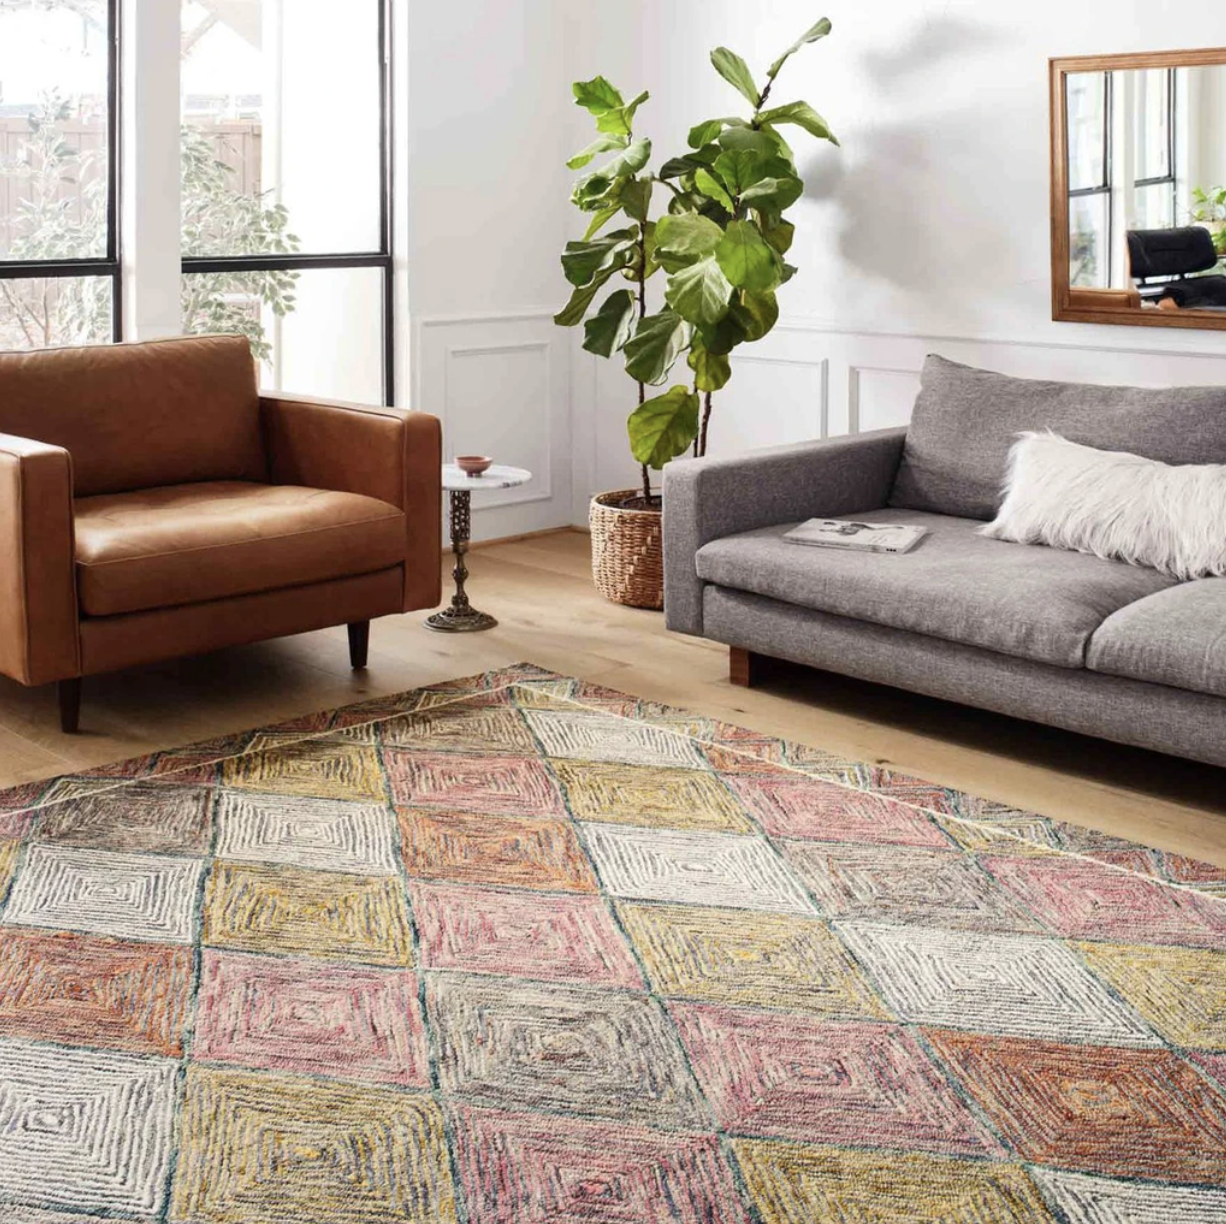 The patterned rug in a living room with couches